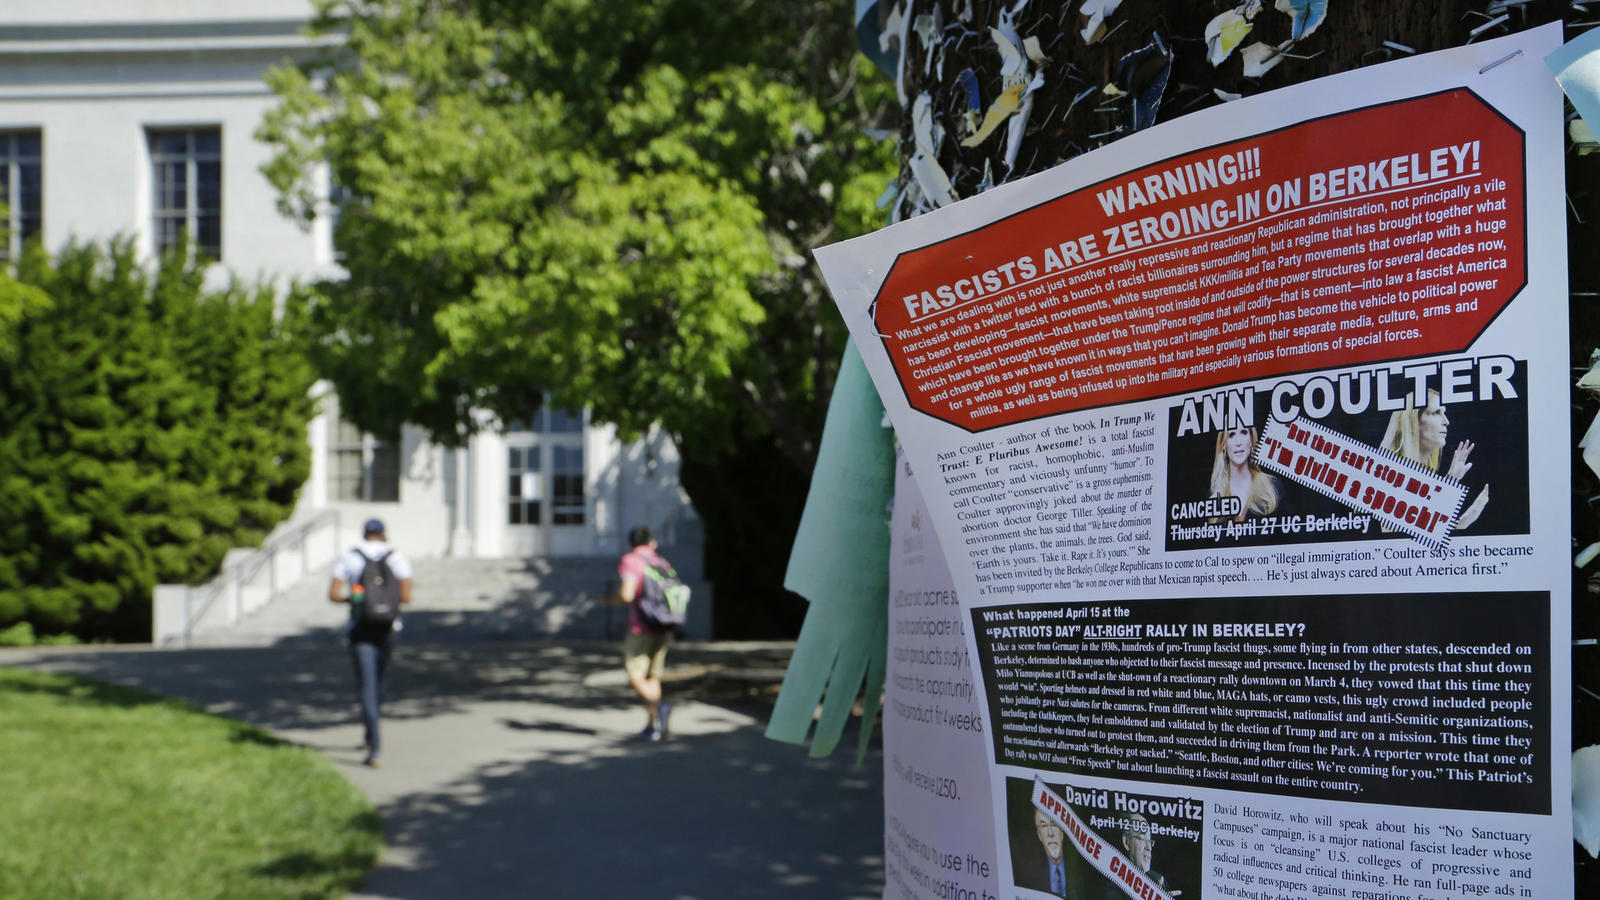 A leaflet is stapled to a message board near Sproul Hall on the UC Berkeley campus. (Ben Margot / Associated Press)